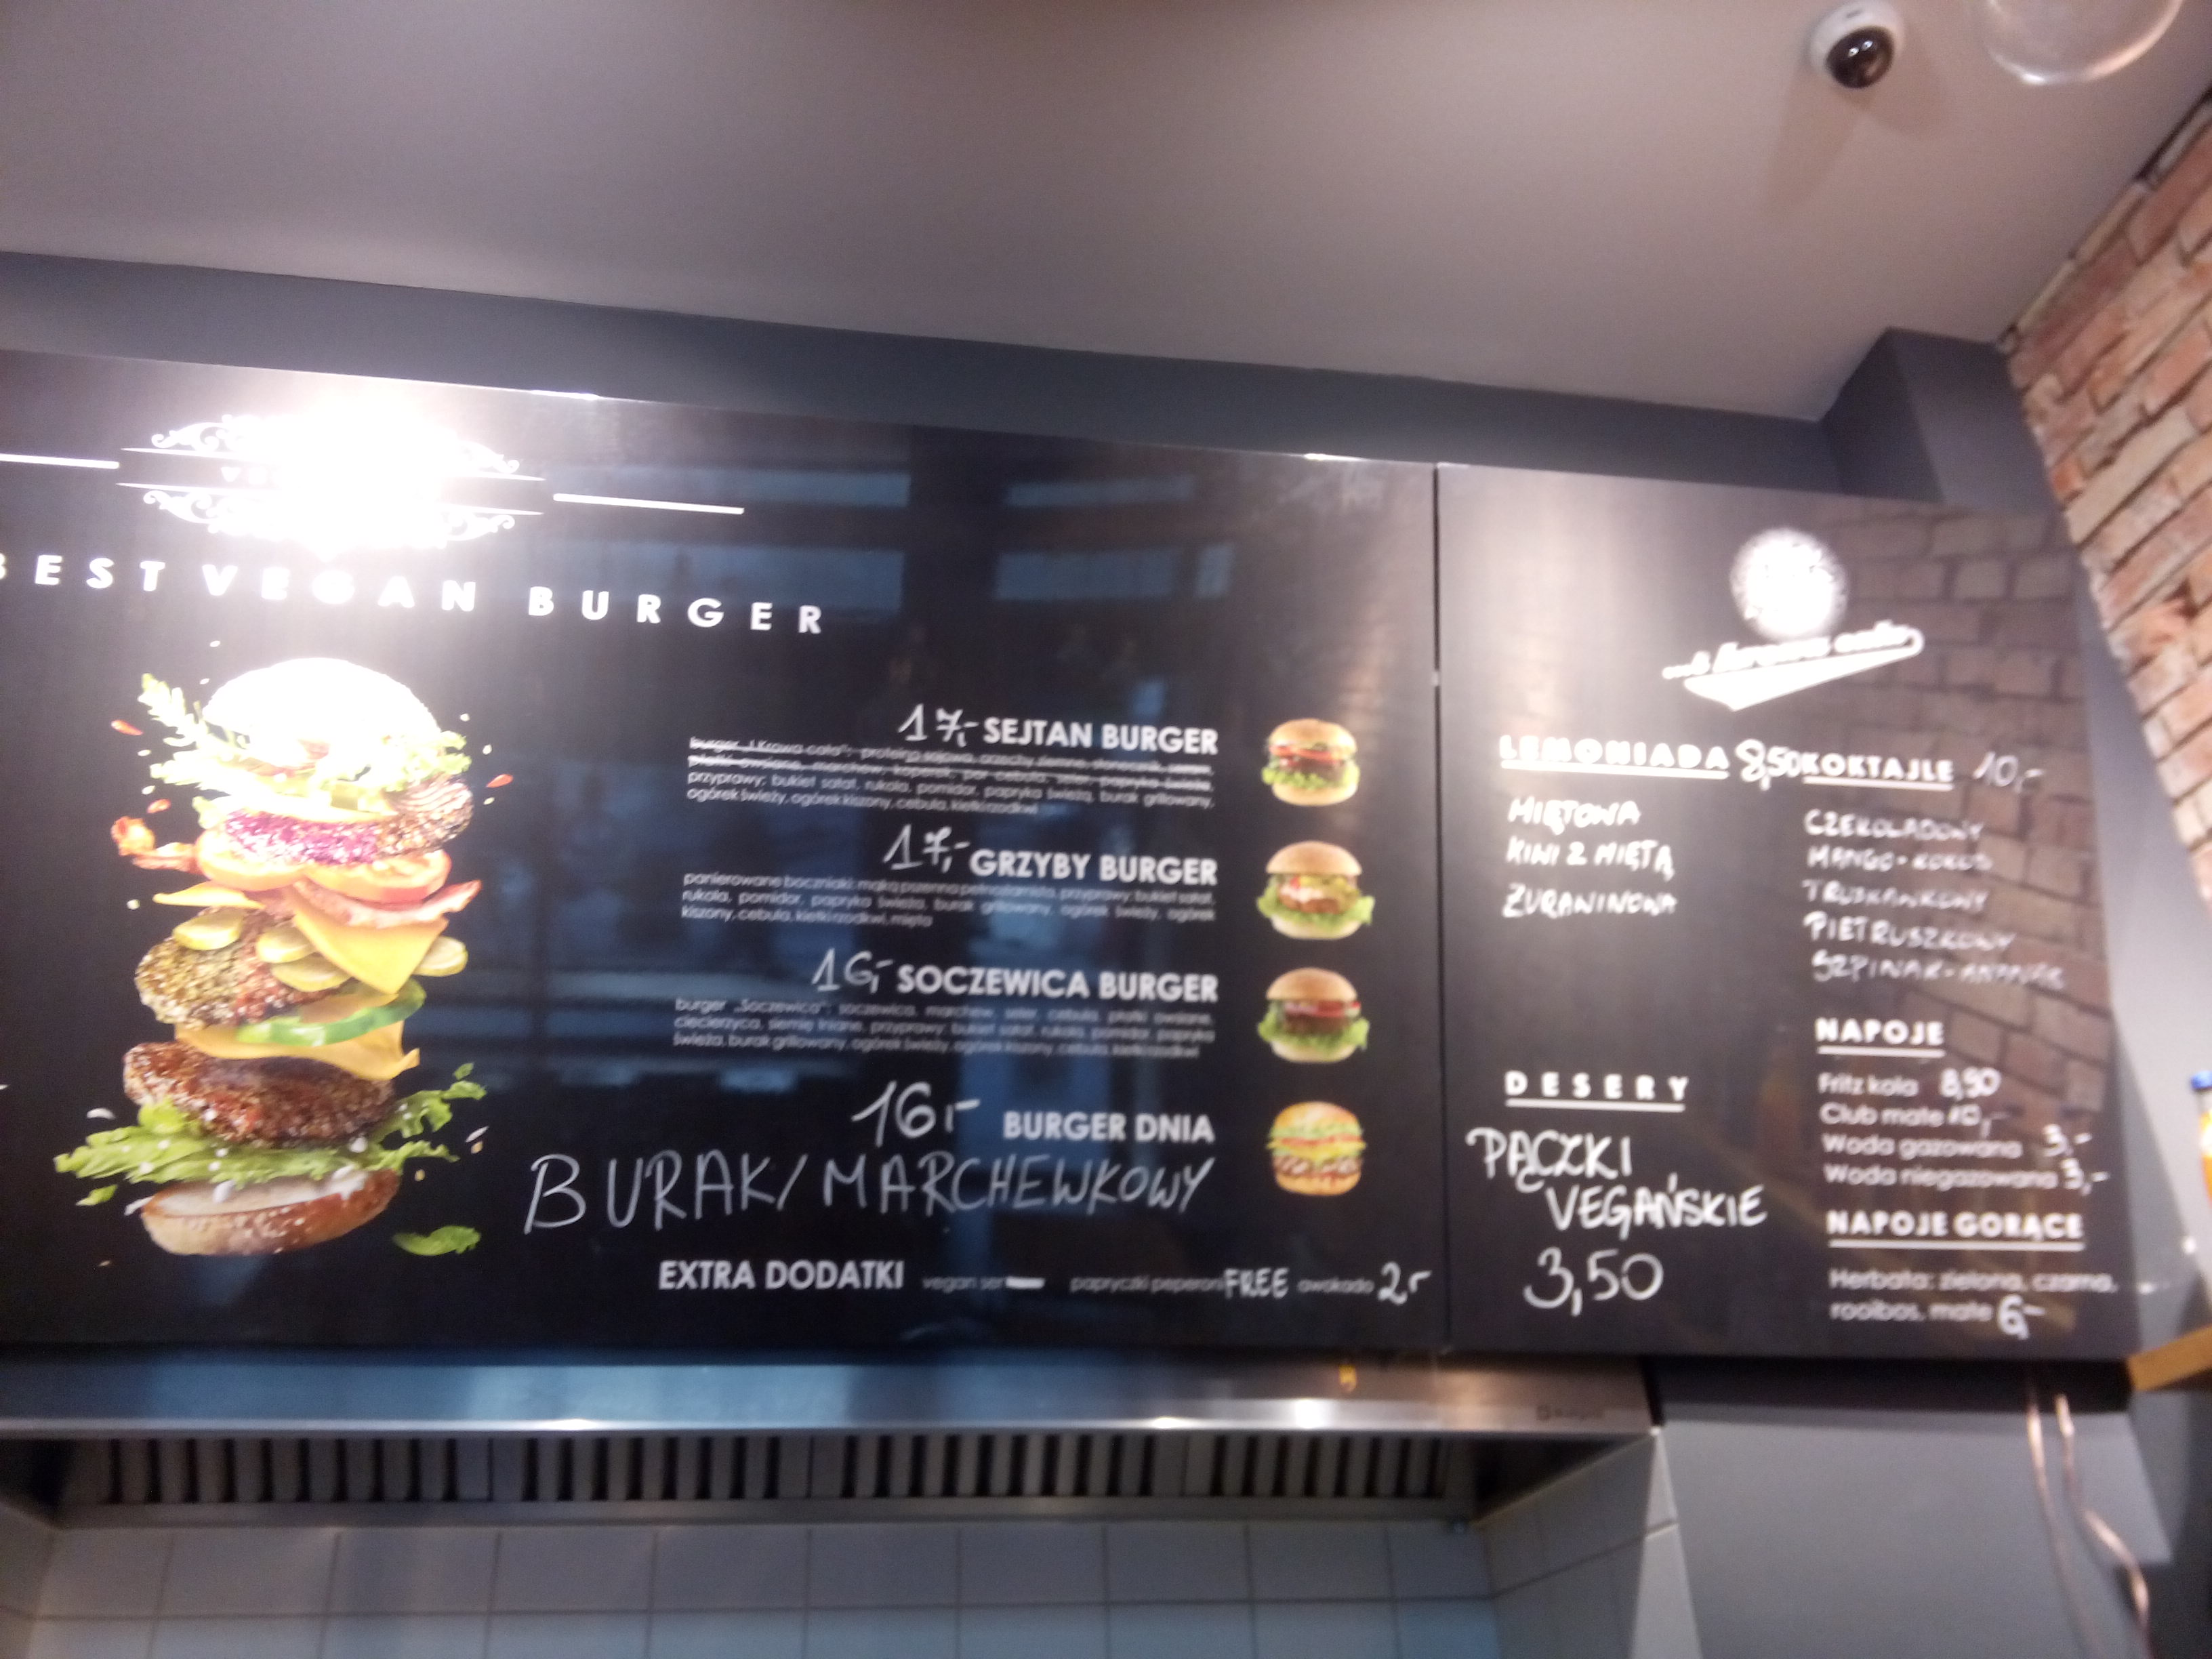 Half a menu with burger options listed